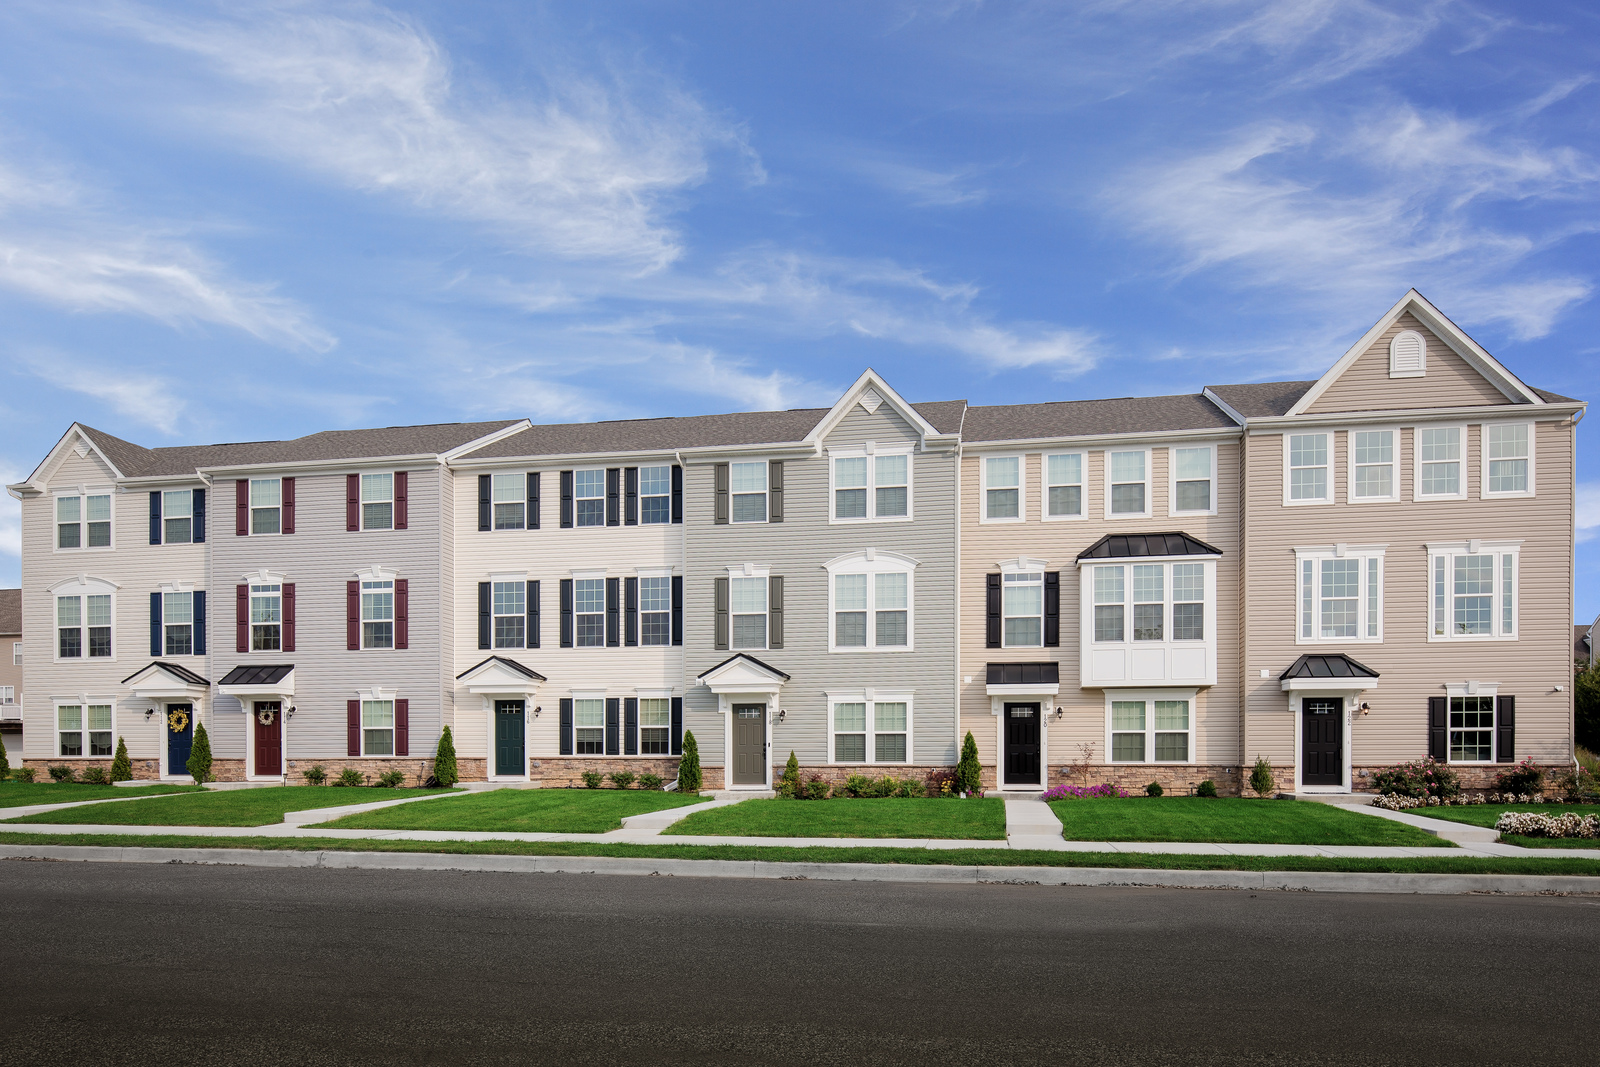 New Homes For Sale At Chestnut Hill Preserve Townhomes In Newark